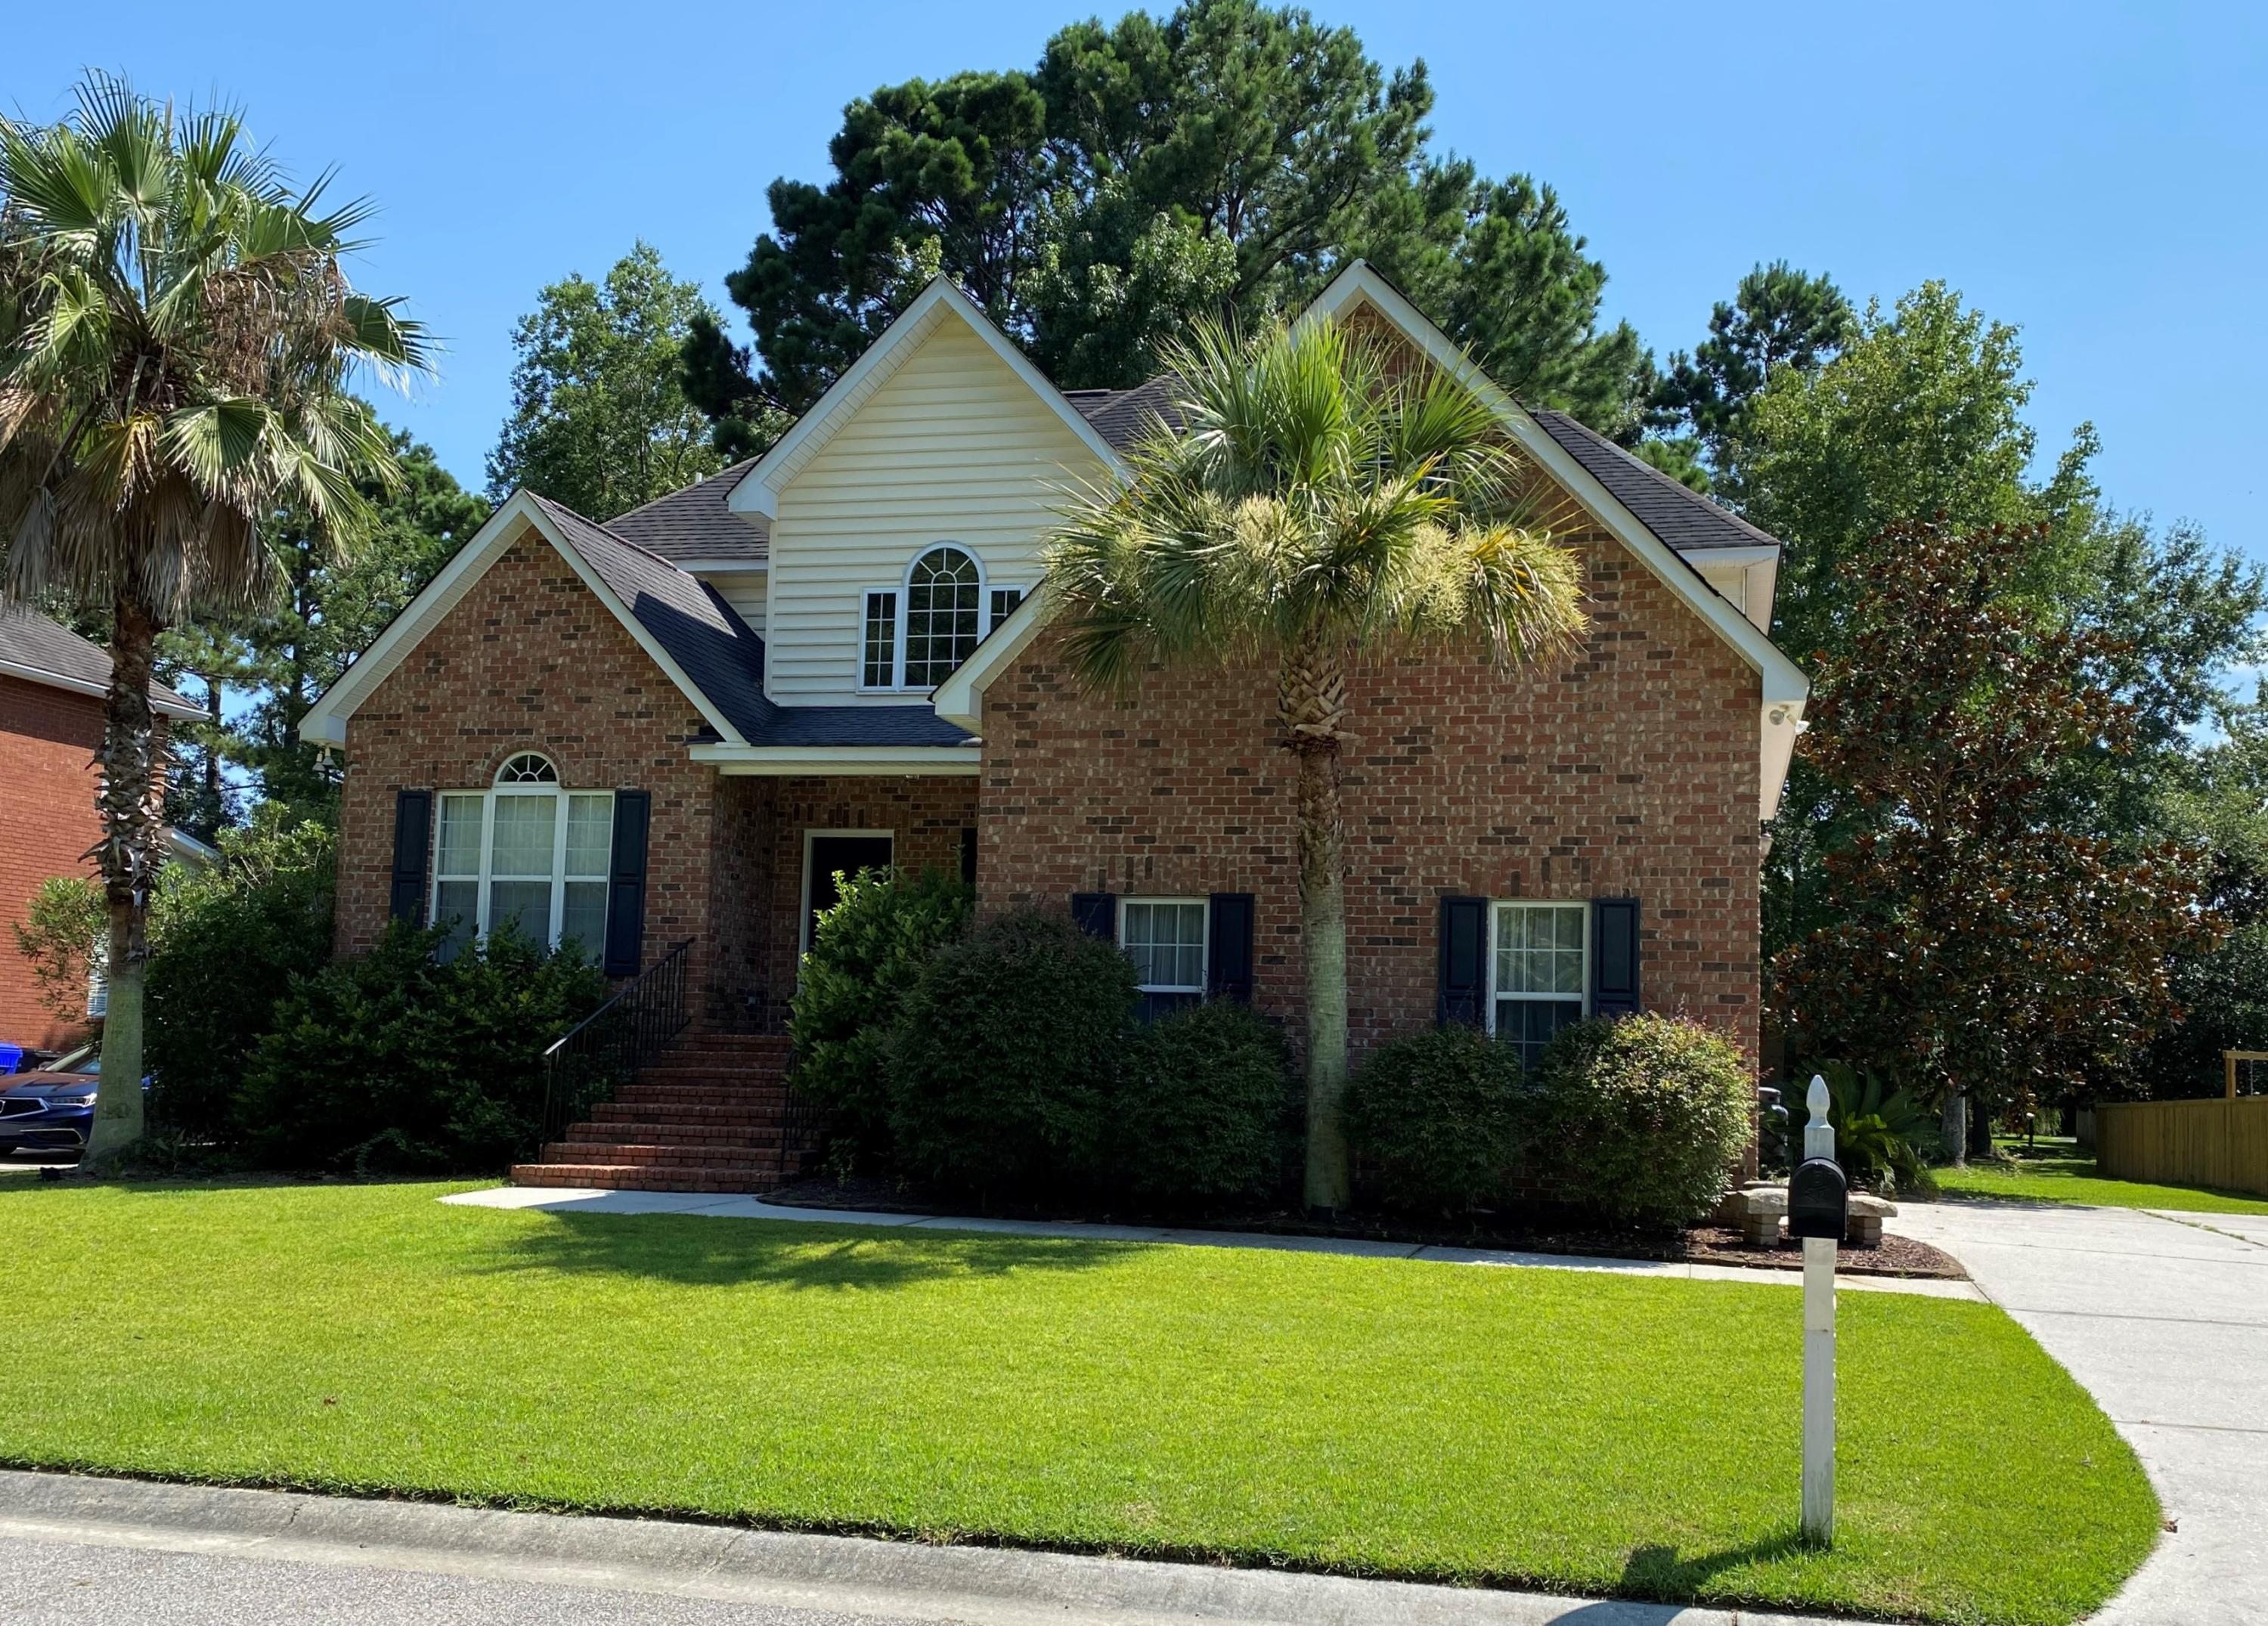 Absolutely beautiful home in great community within Rivertowne Plantation. Lovely brick built residence is full of amenities and has ample space for today's  family,  Large entry foyer/hall; living room, dining room, extra large family room, well-equipped kitchen on first floor, as well as large utility room, powder room, and deluxe master suite with double vanity, jetted tub, separate shower, huge WIC.  Upstairs has 3 large bedrooms and plenty of attic storage.  A warm and inviting screened porch on the back is excellent for entertaining..  The 2 car attached garage has space for 2 modern vehicles.  This is a very friendly community located in North Mt. Pleasant.  Great schools service this area.  Home is vacant and easy to show.